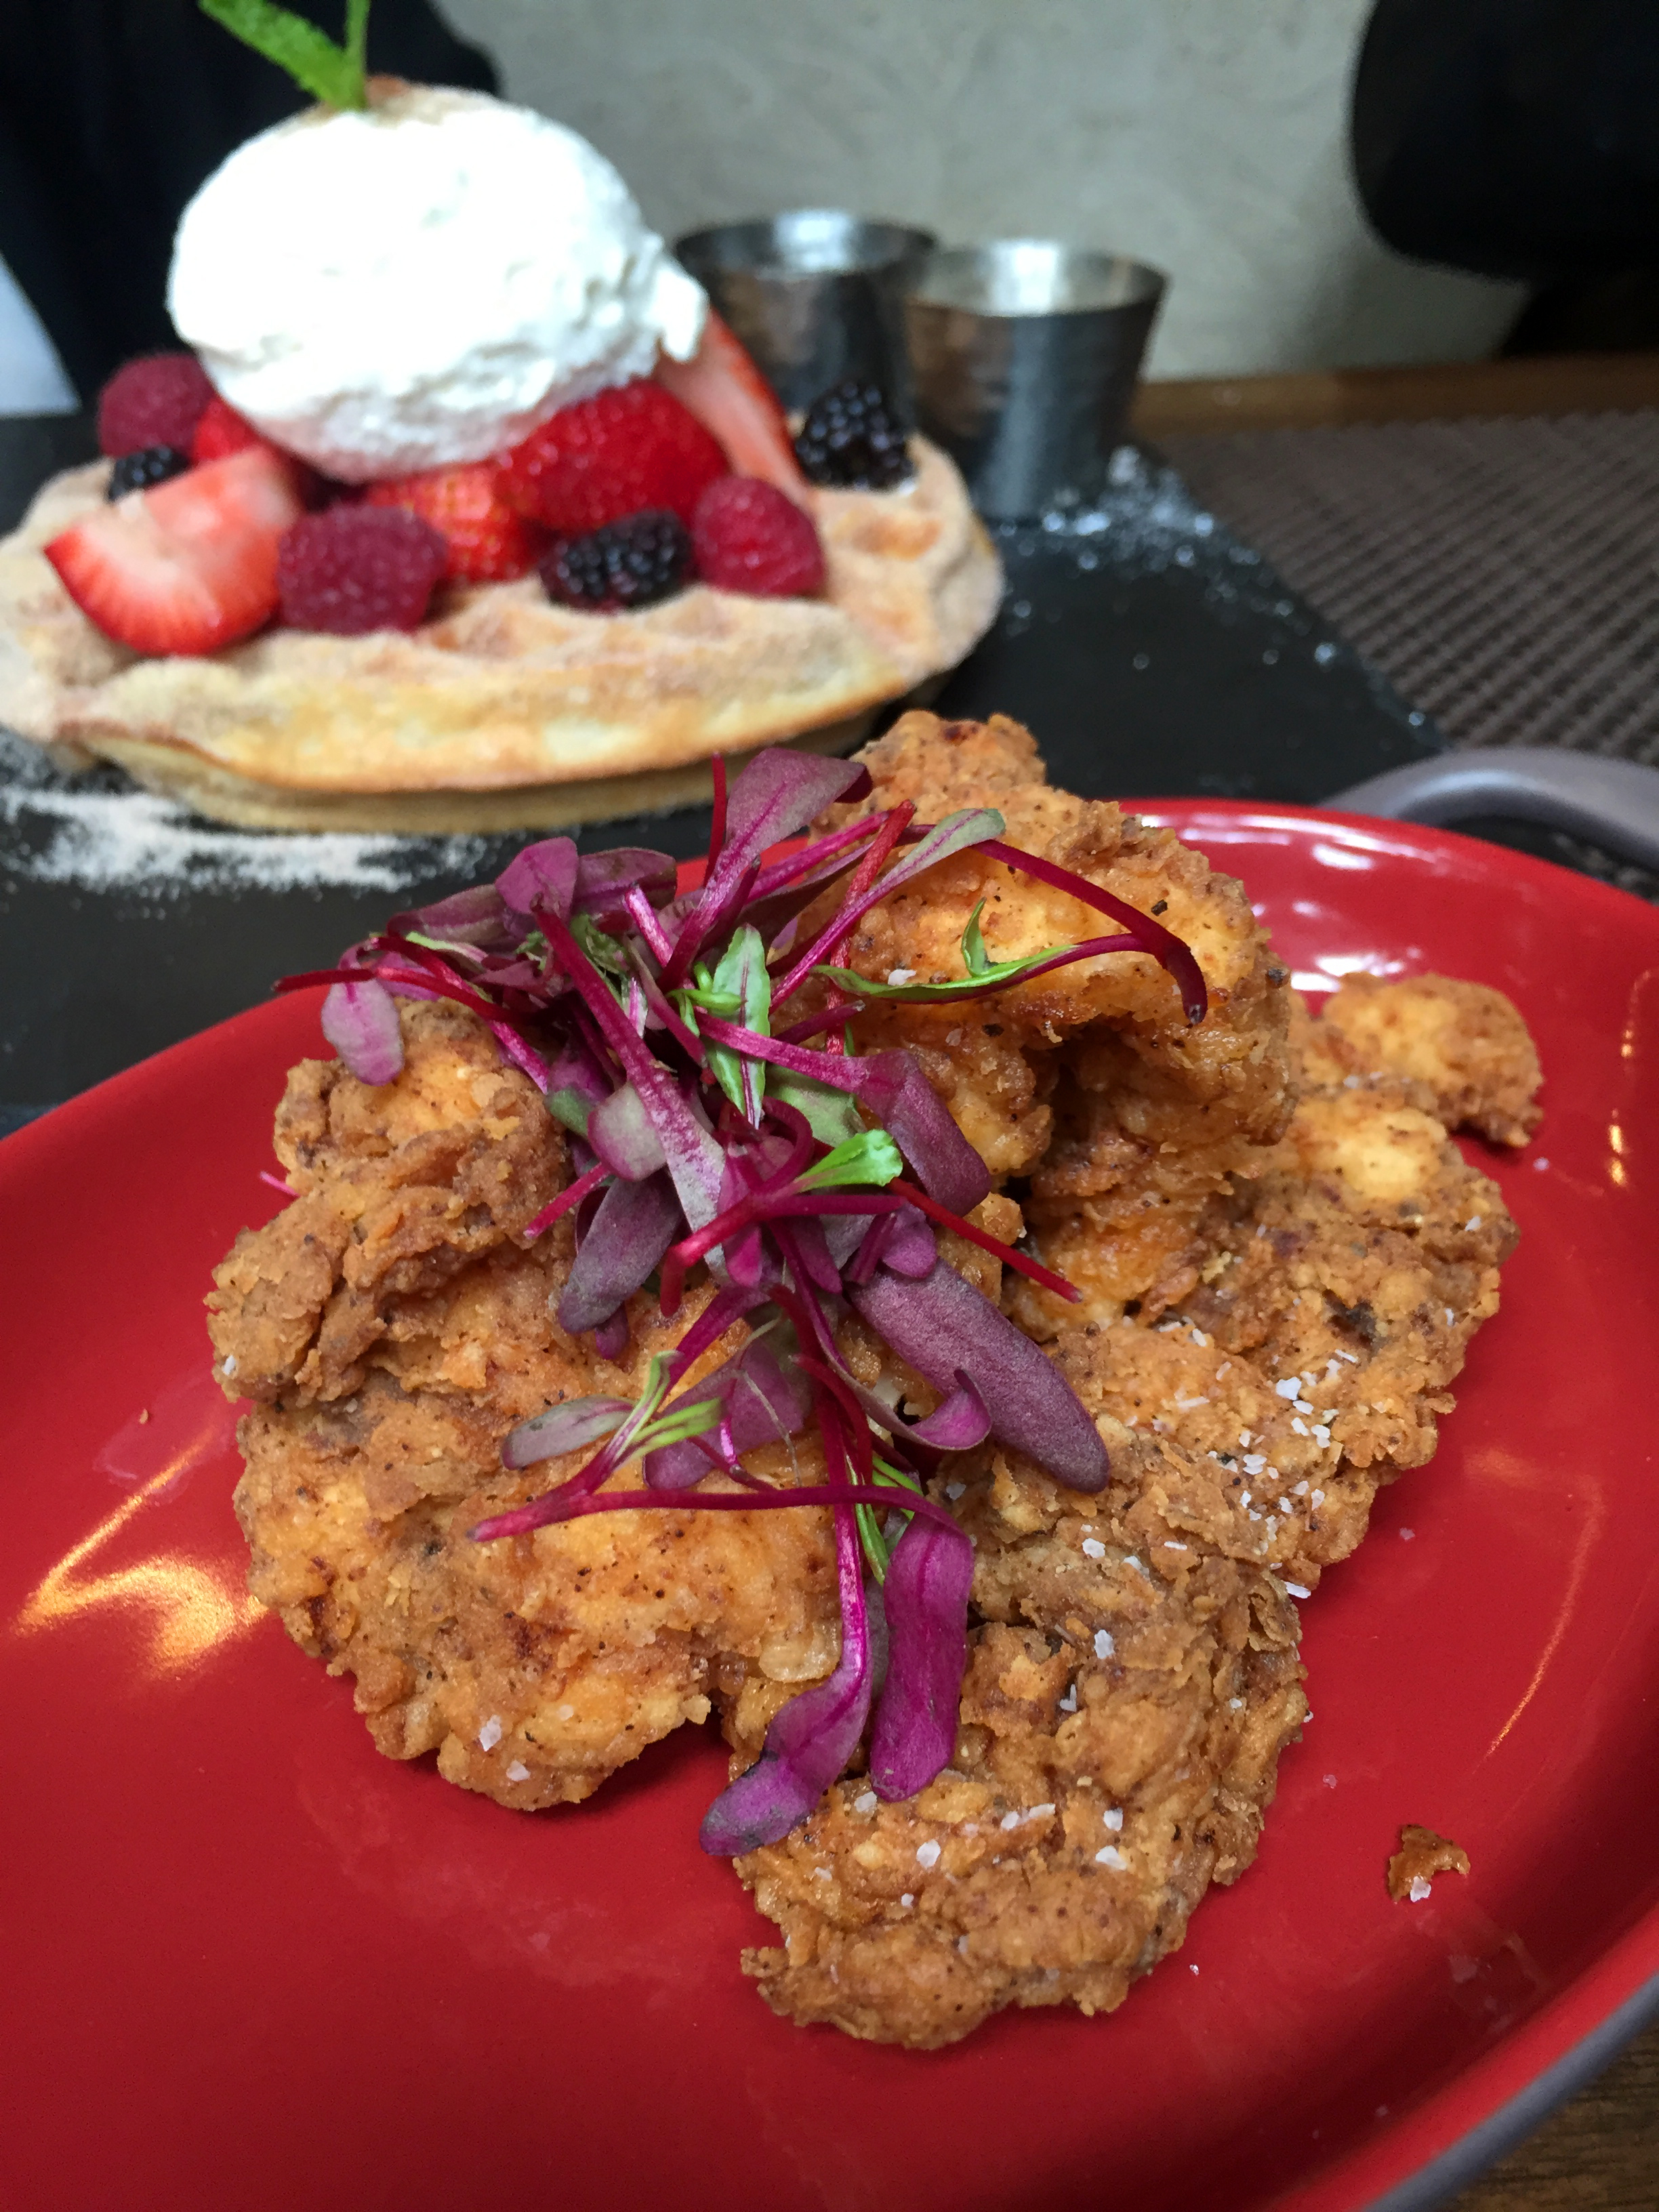 Churro Waffle and Fried Chicken at Toca Madera on The Gilded Bellini